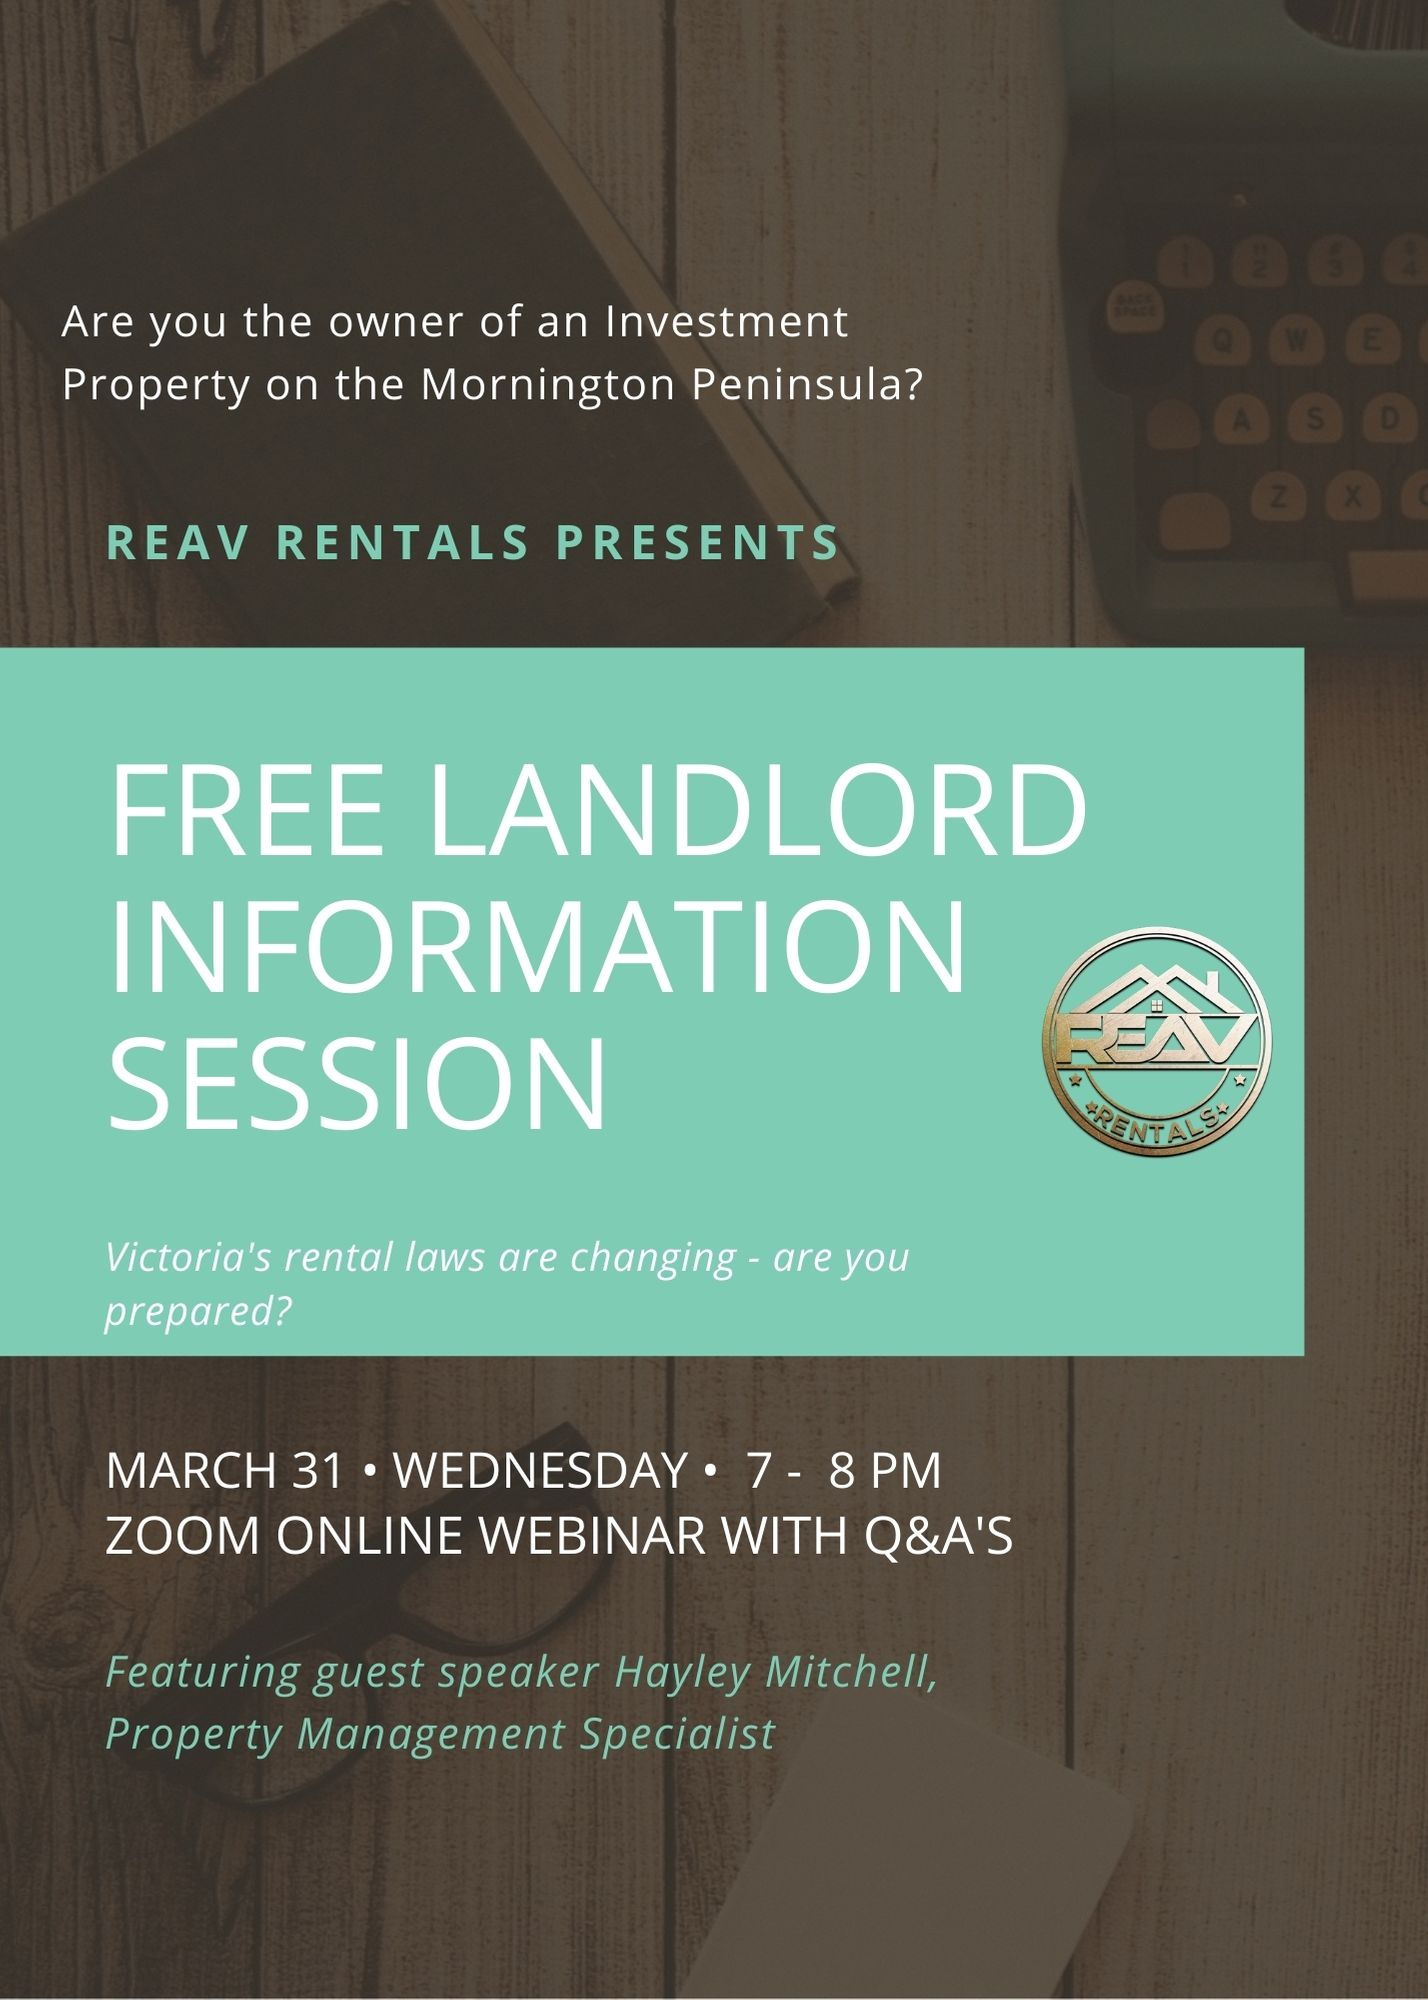 Free Landlord Information Session